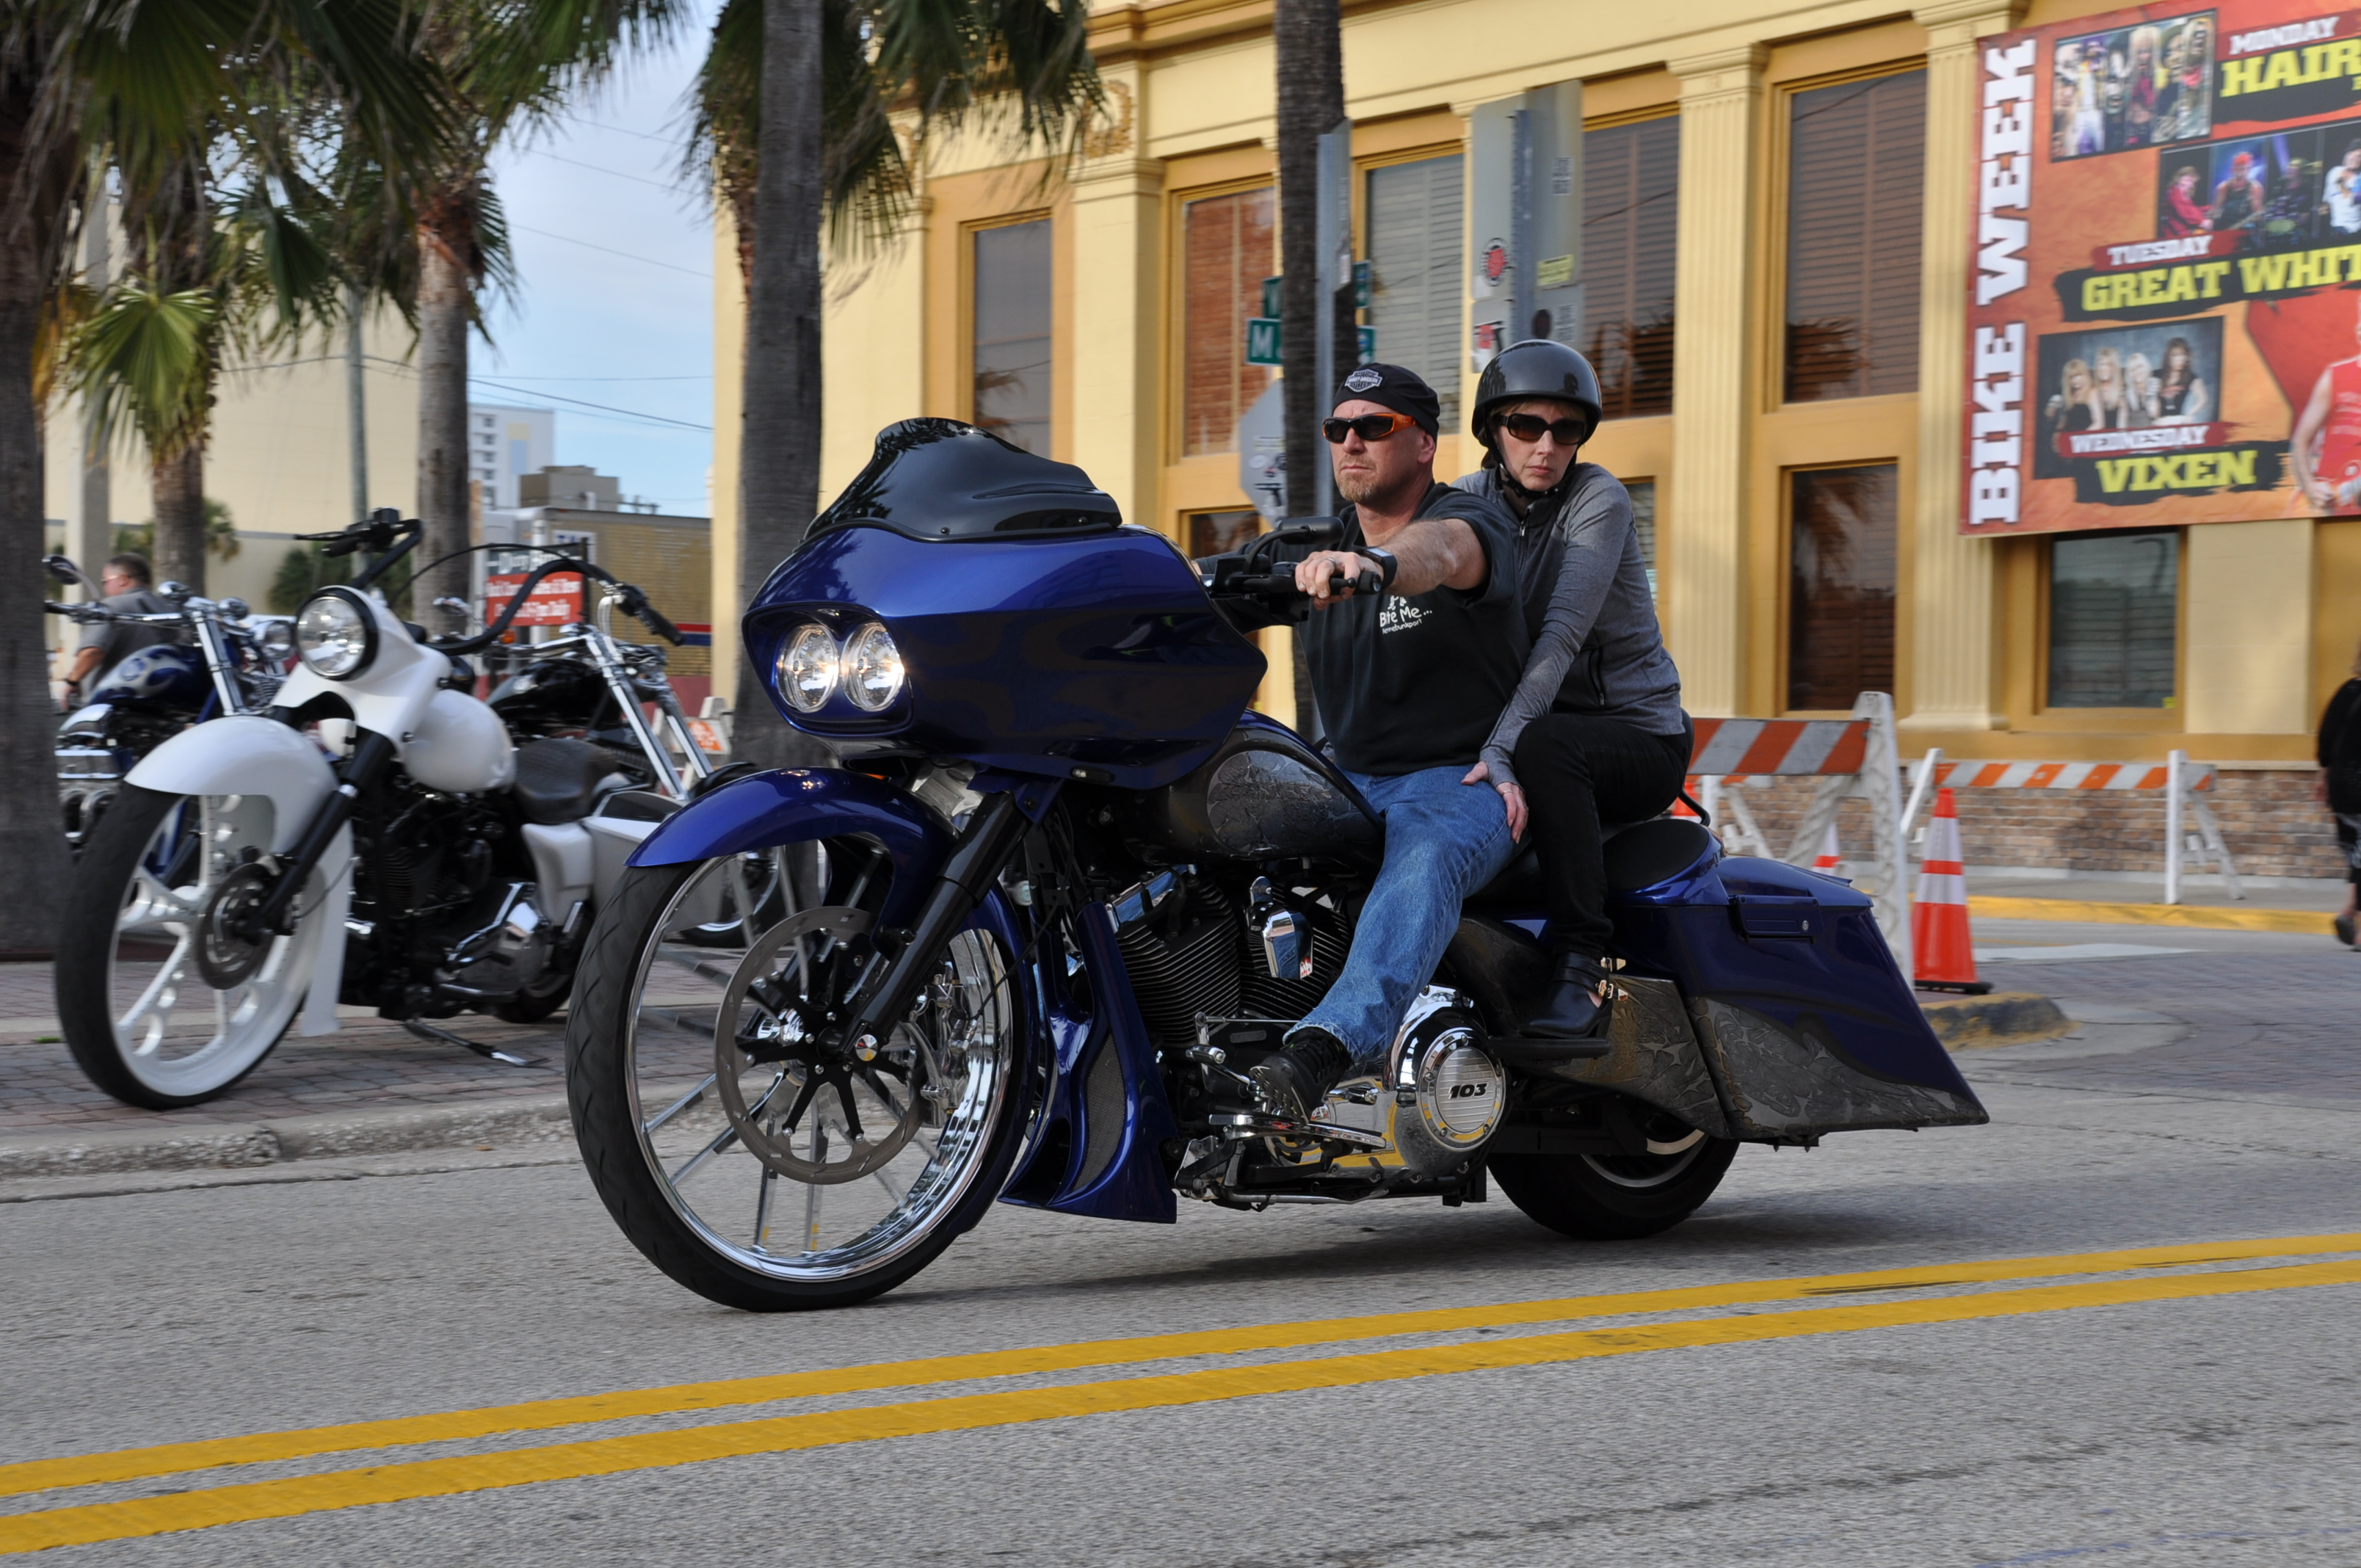 2016 BIKEWEEK IS ALREADY WELL UNDERWAY!